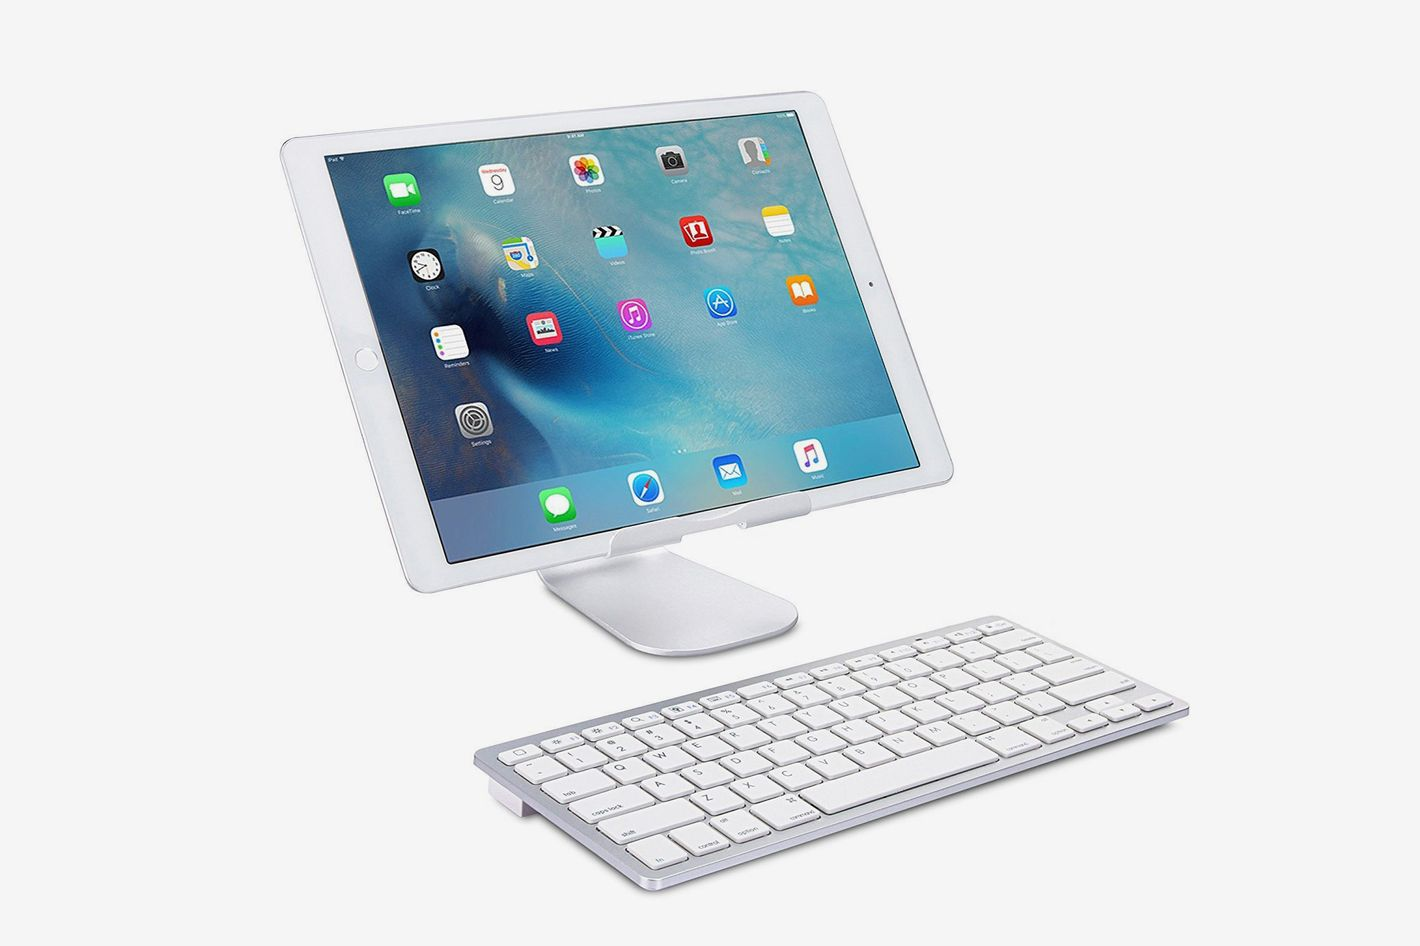 b4b44b2d5a3 11 Best iPad Keyboards and Keyboard Cases for iPads — 2019